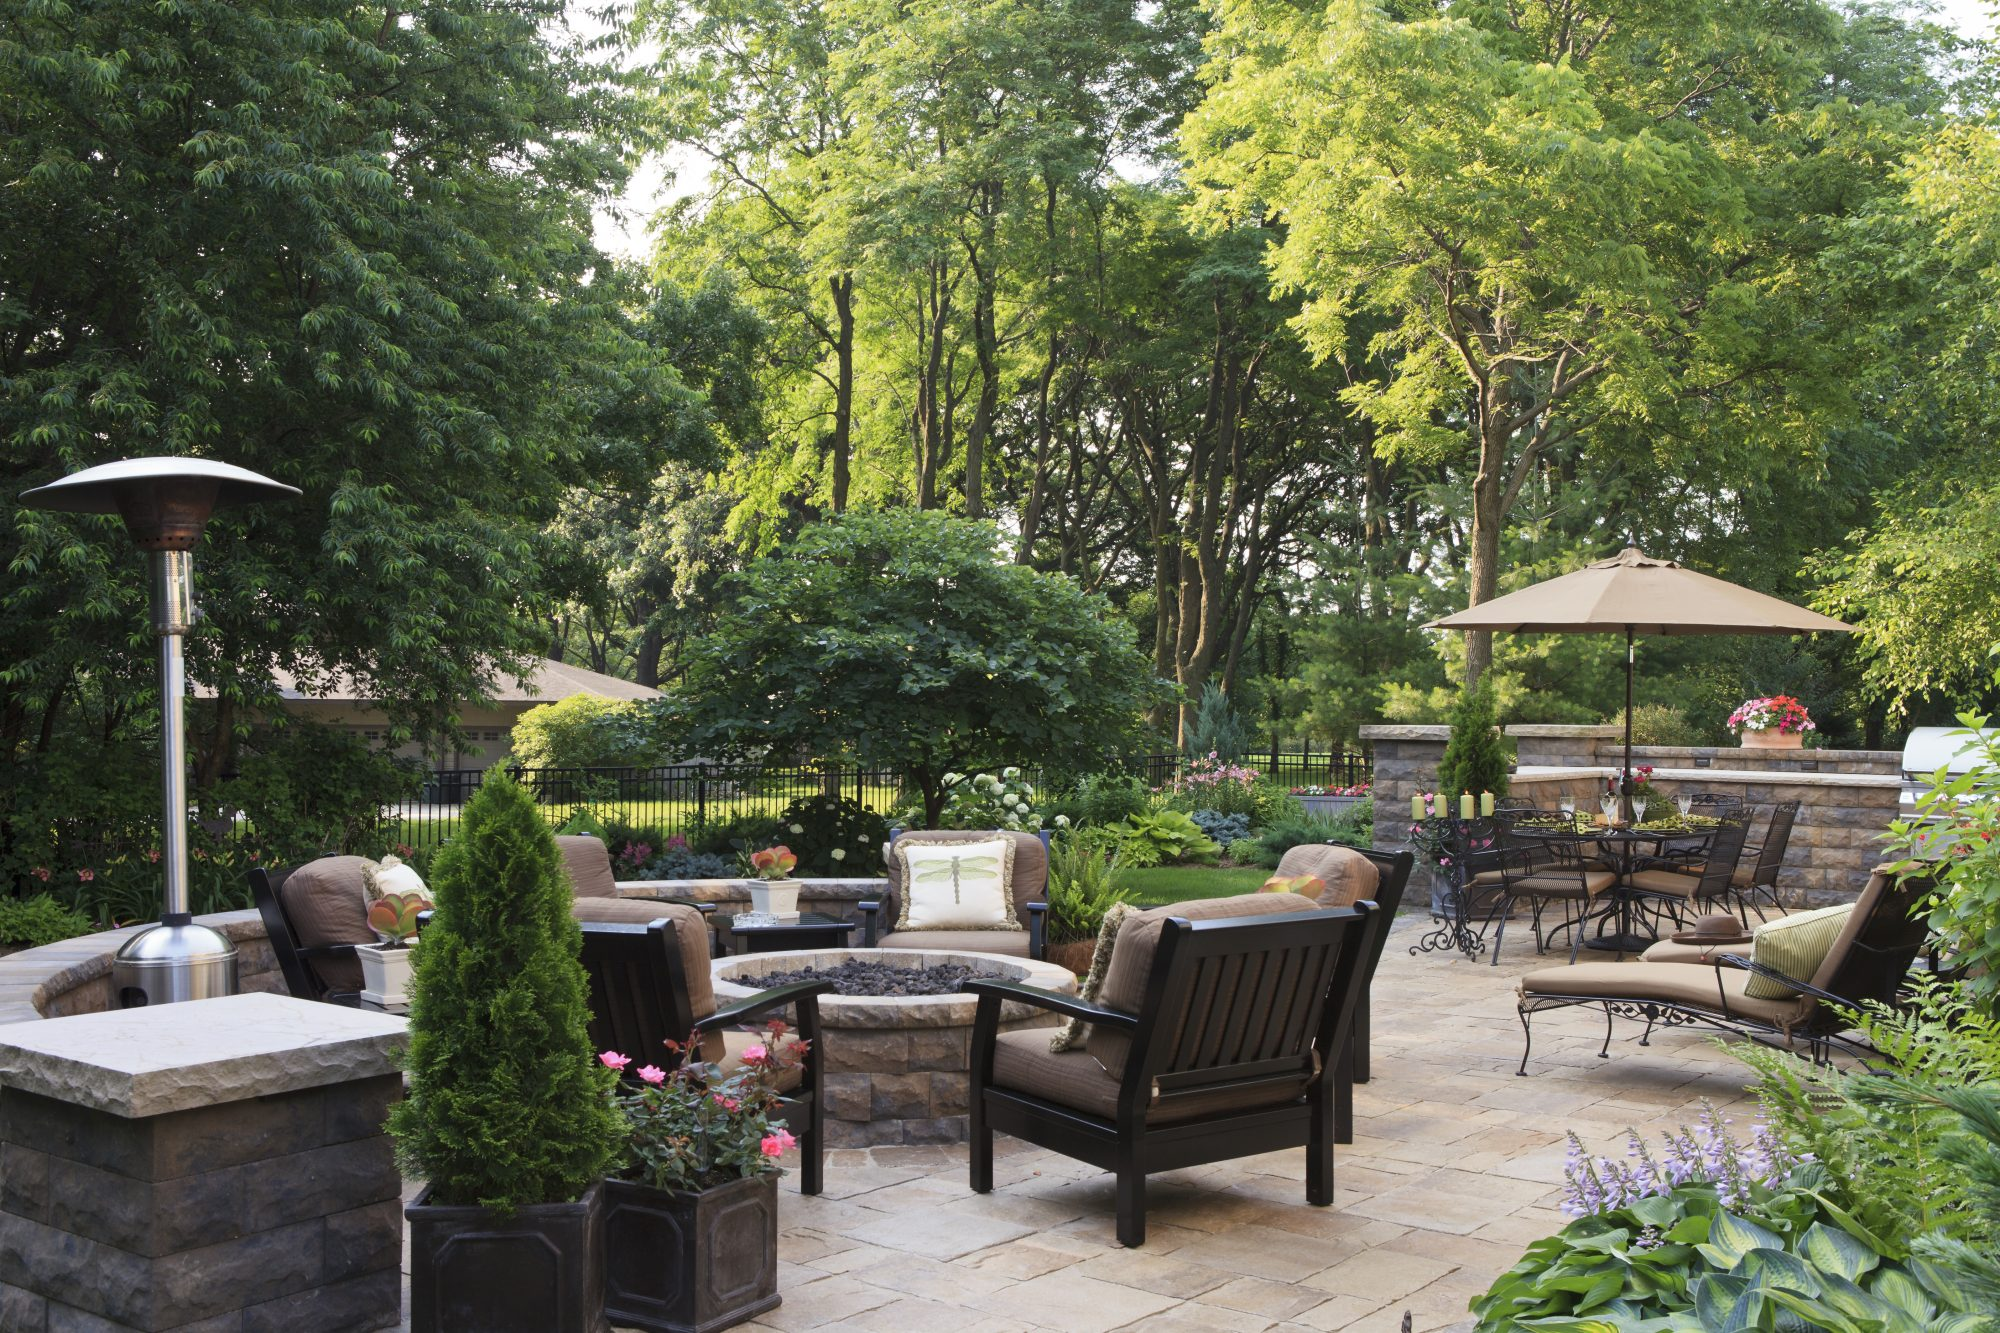 garden patio with firepit, heaters, and seating area